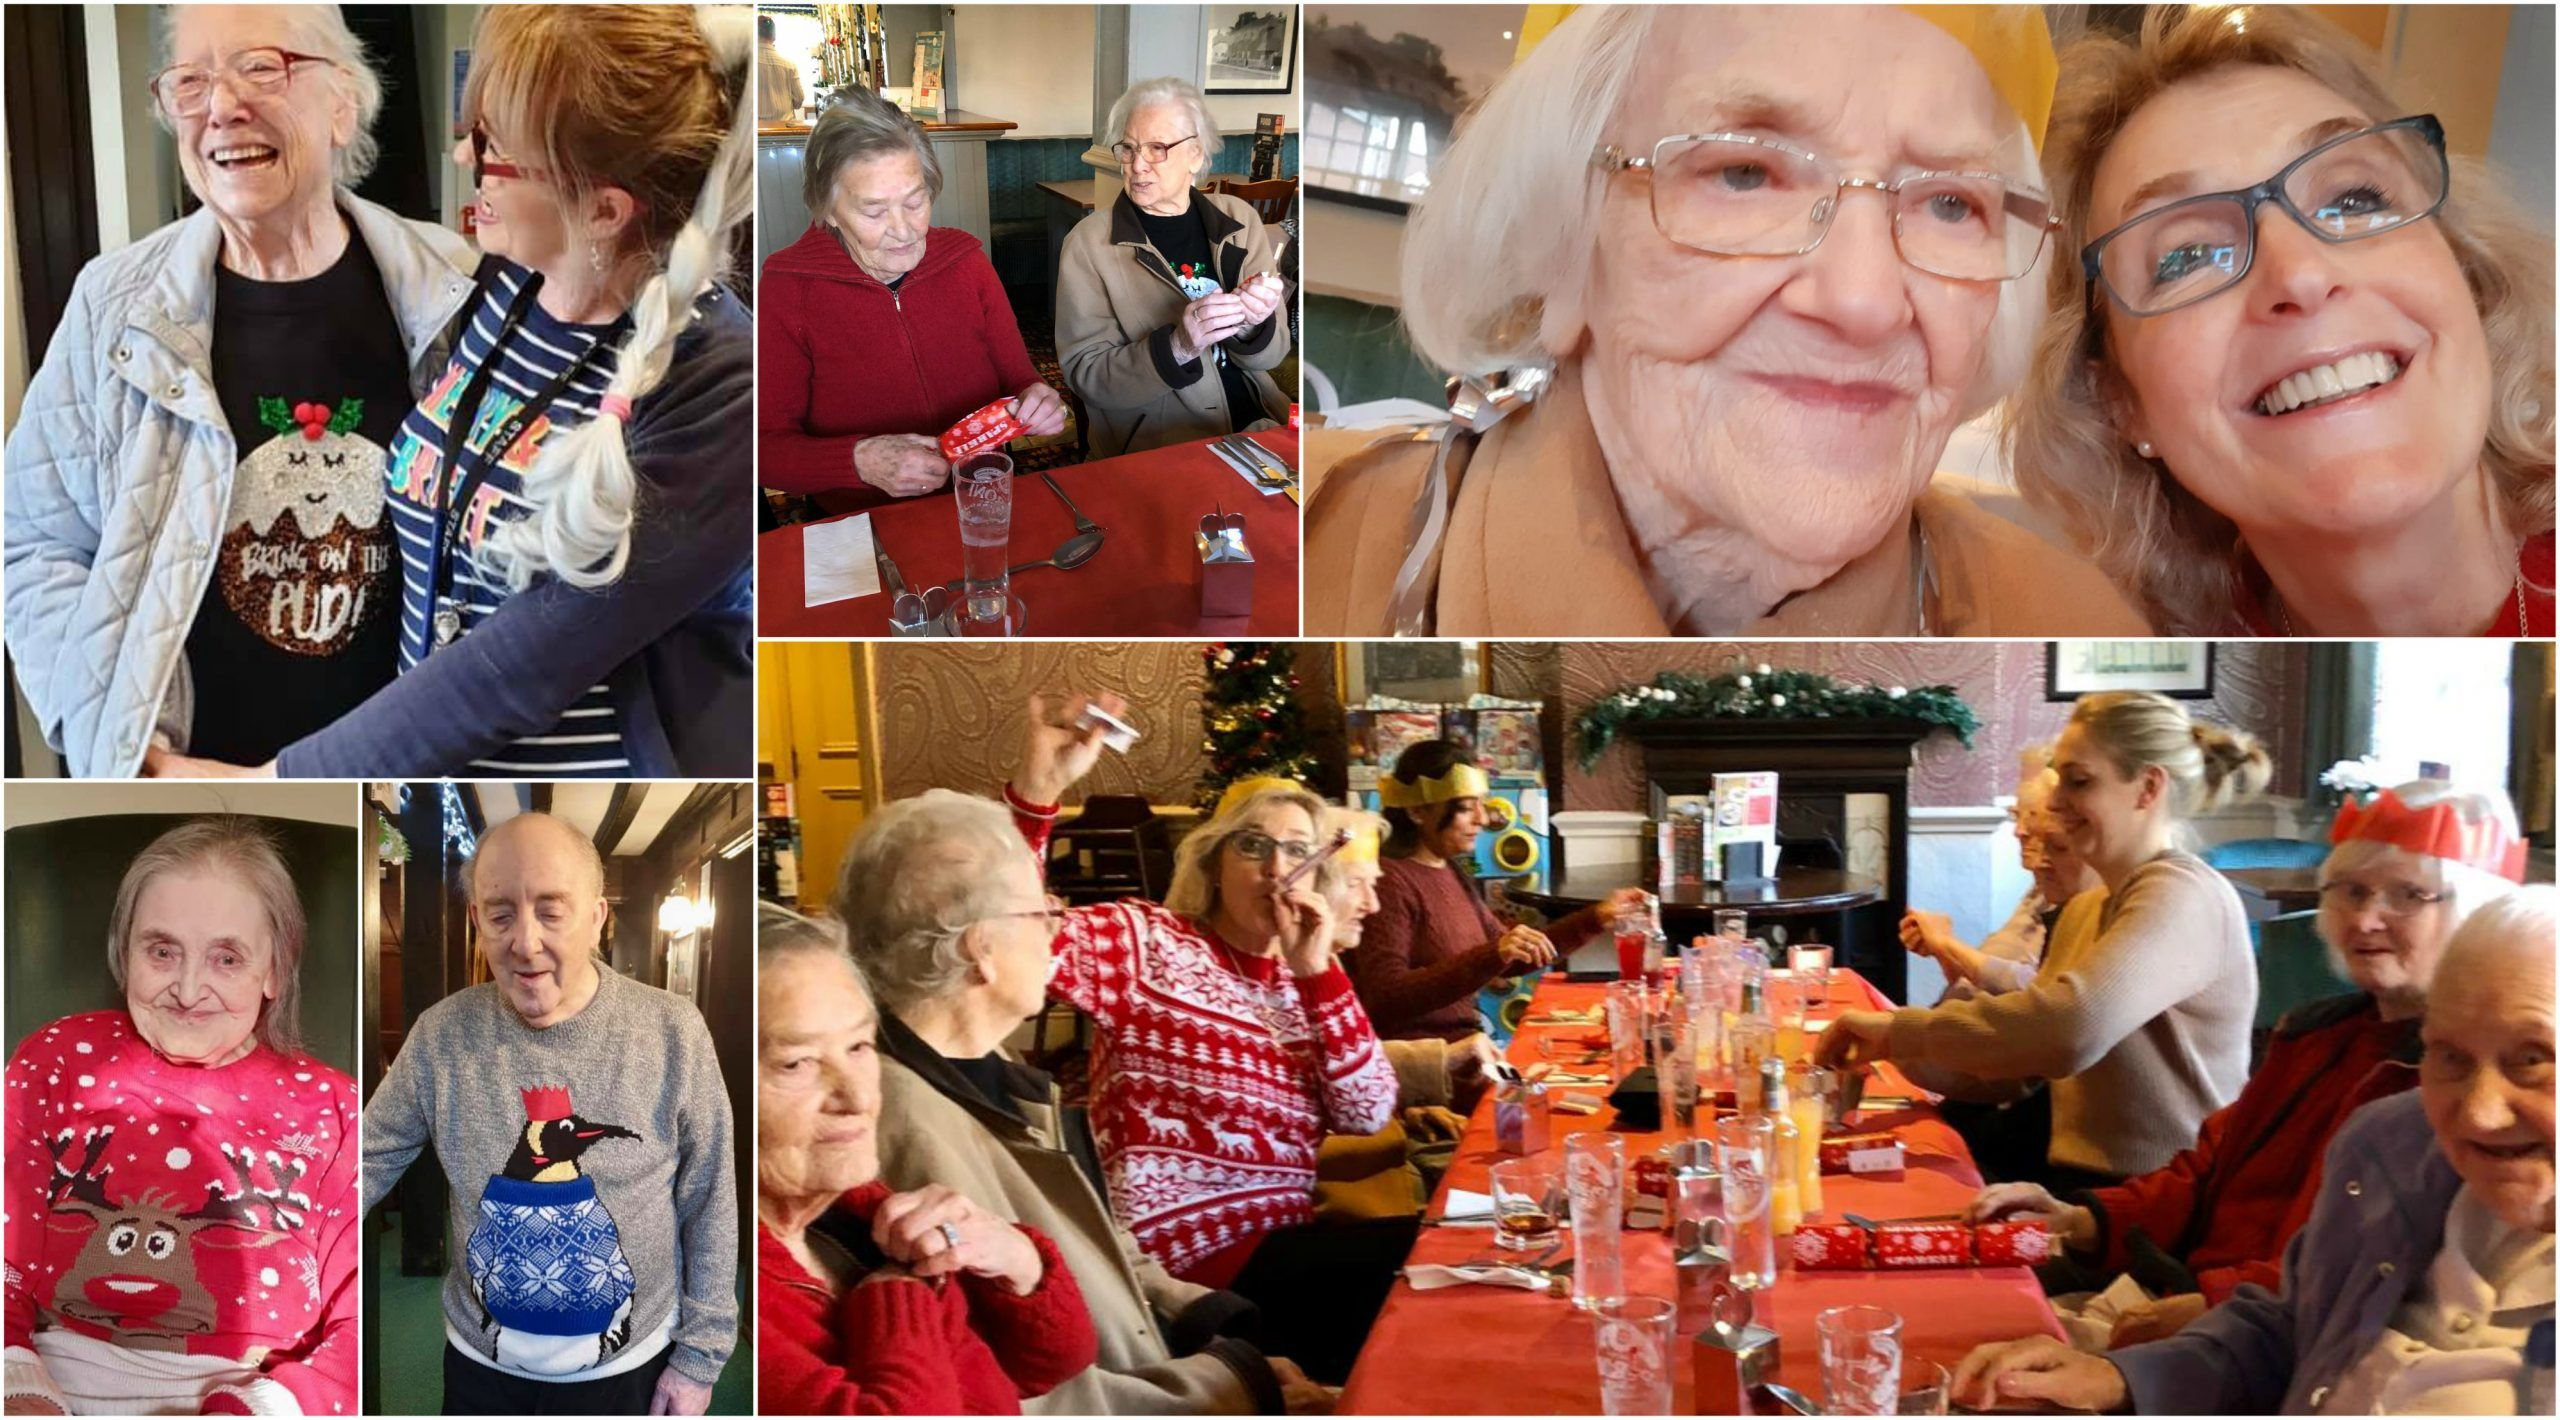 Residents at Old Raven House Care Home enjoy the festivities over Christmas.